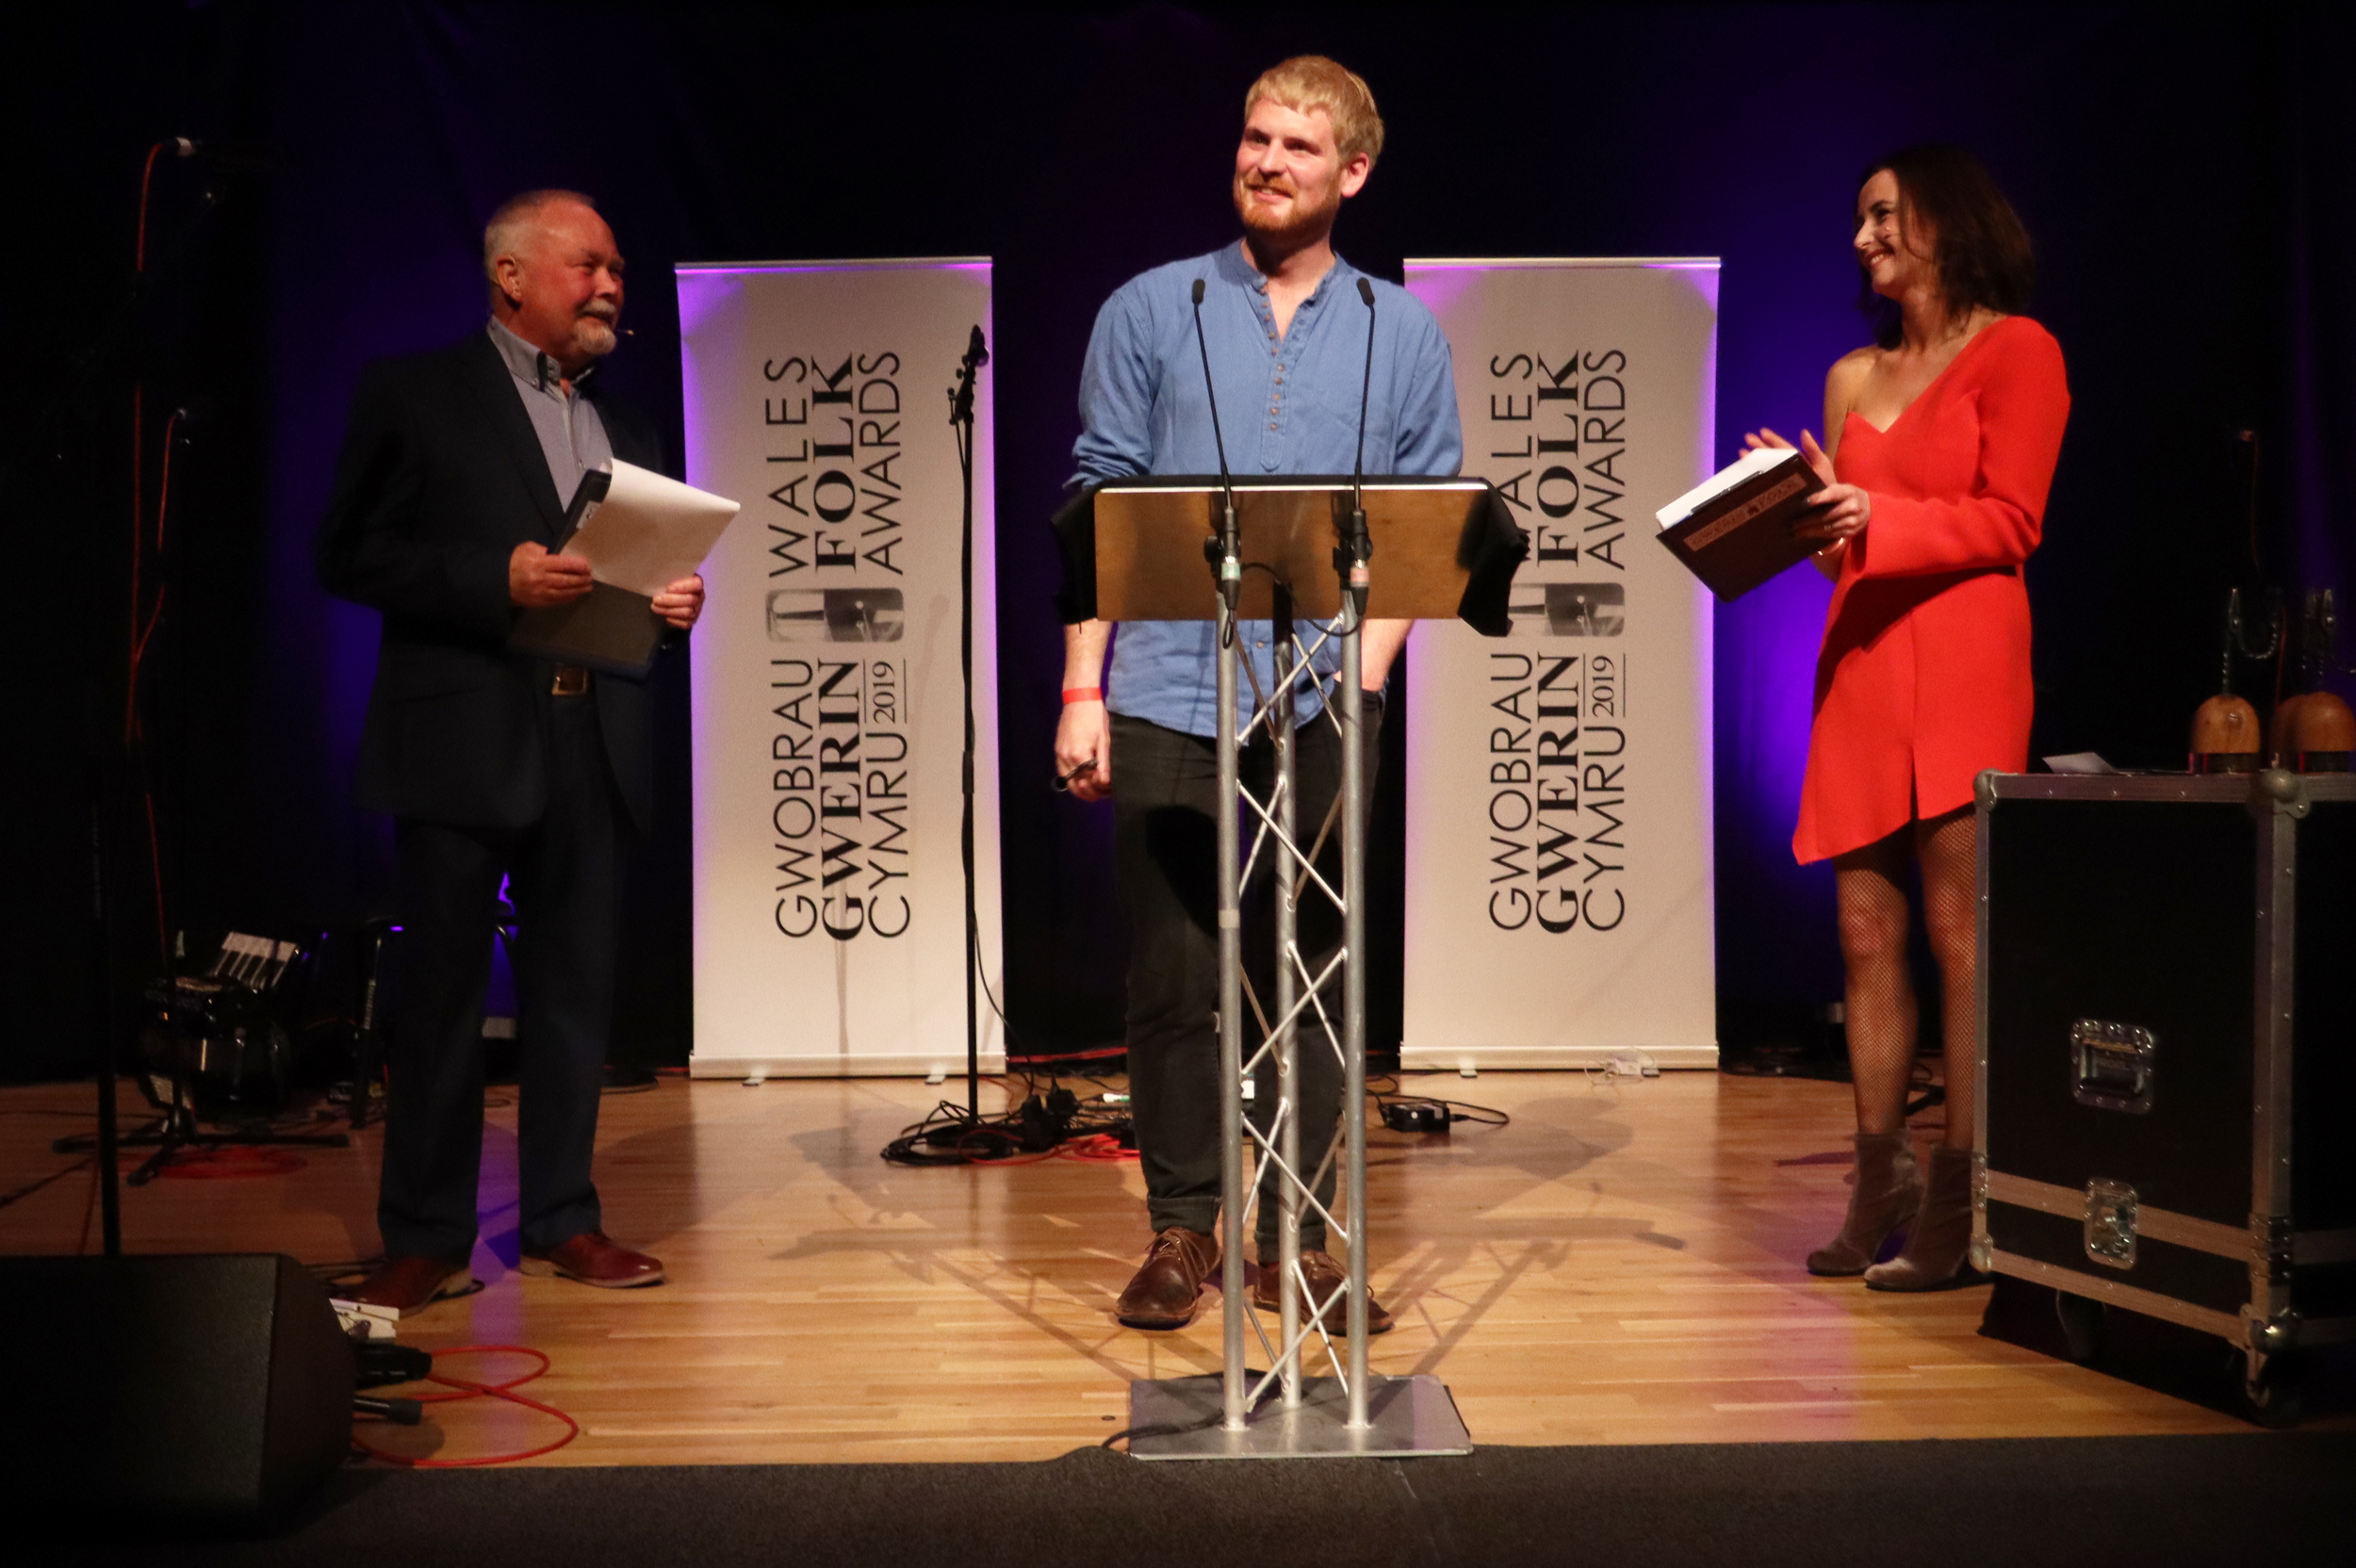 Wales Folk Awards 2019